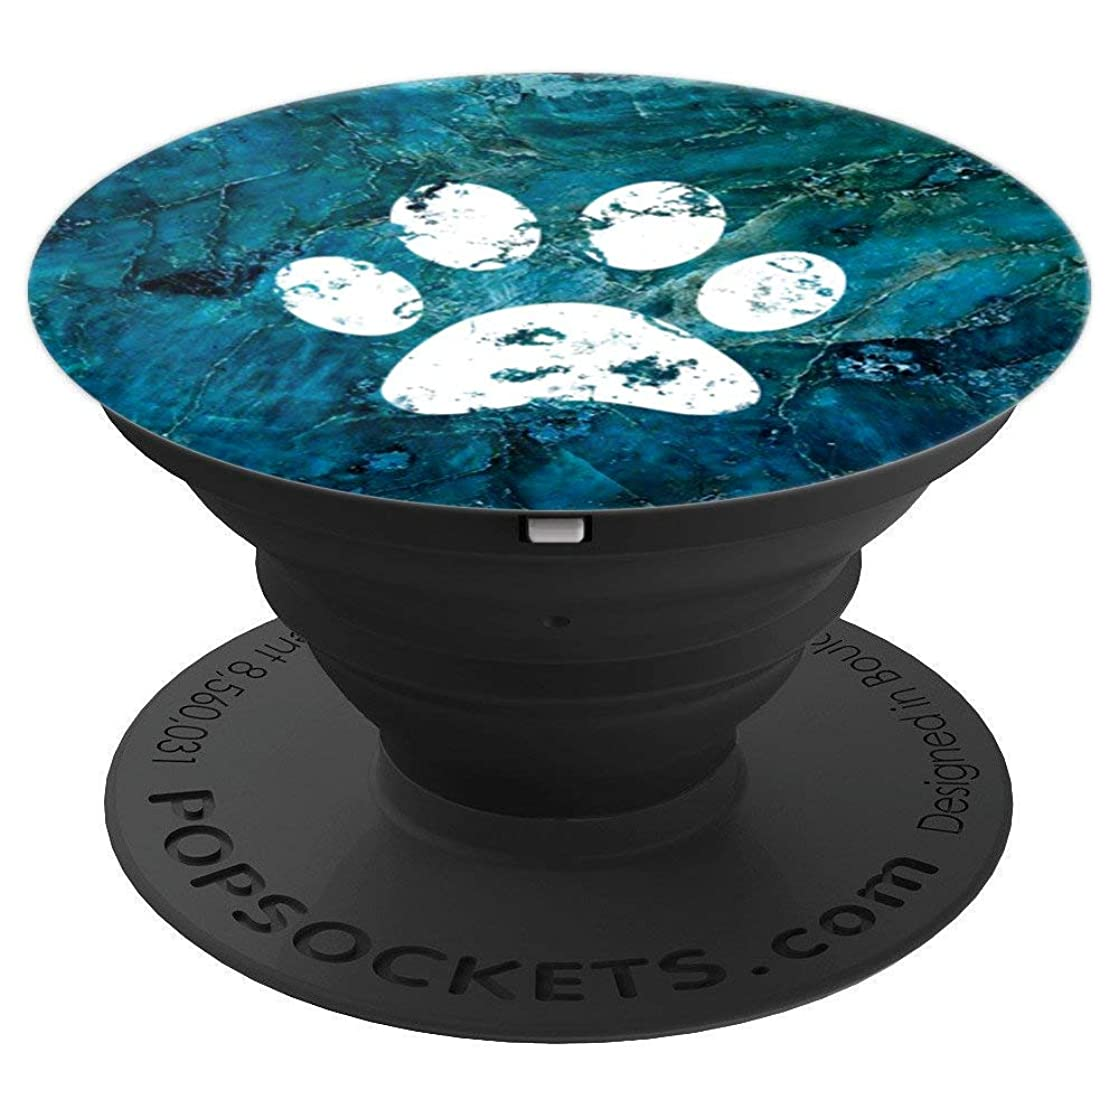 White Dog Paw Print Blue Marble Phone Accessory - PopSockets Grip and Stand for Phones and Tablets